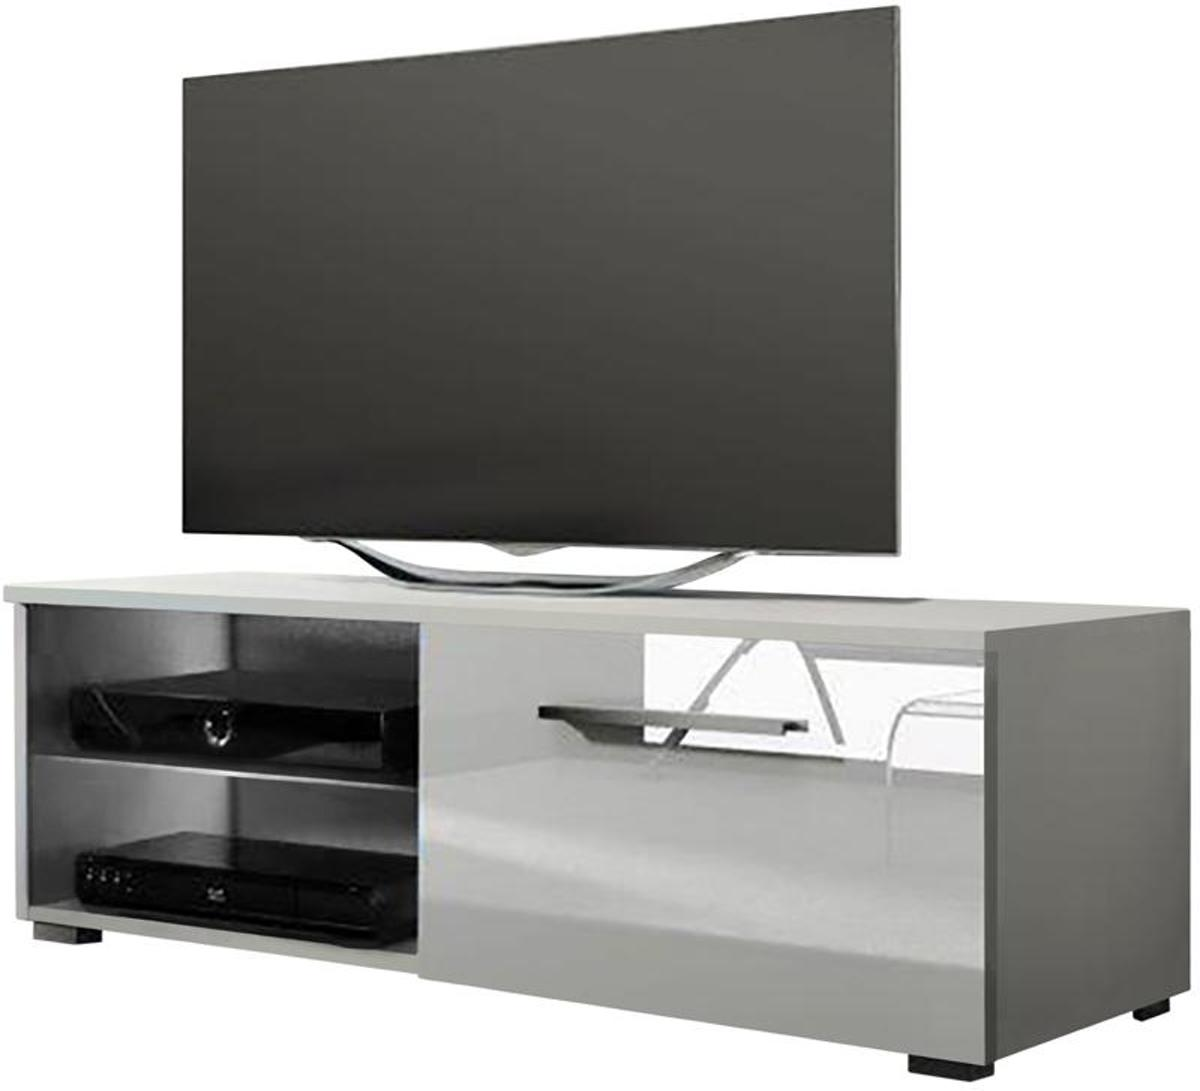 Hoogglans Wit Tv Meubel Tv Meubel Tv Kast Tenus Single Body Wit Front Hoogglans Wit